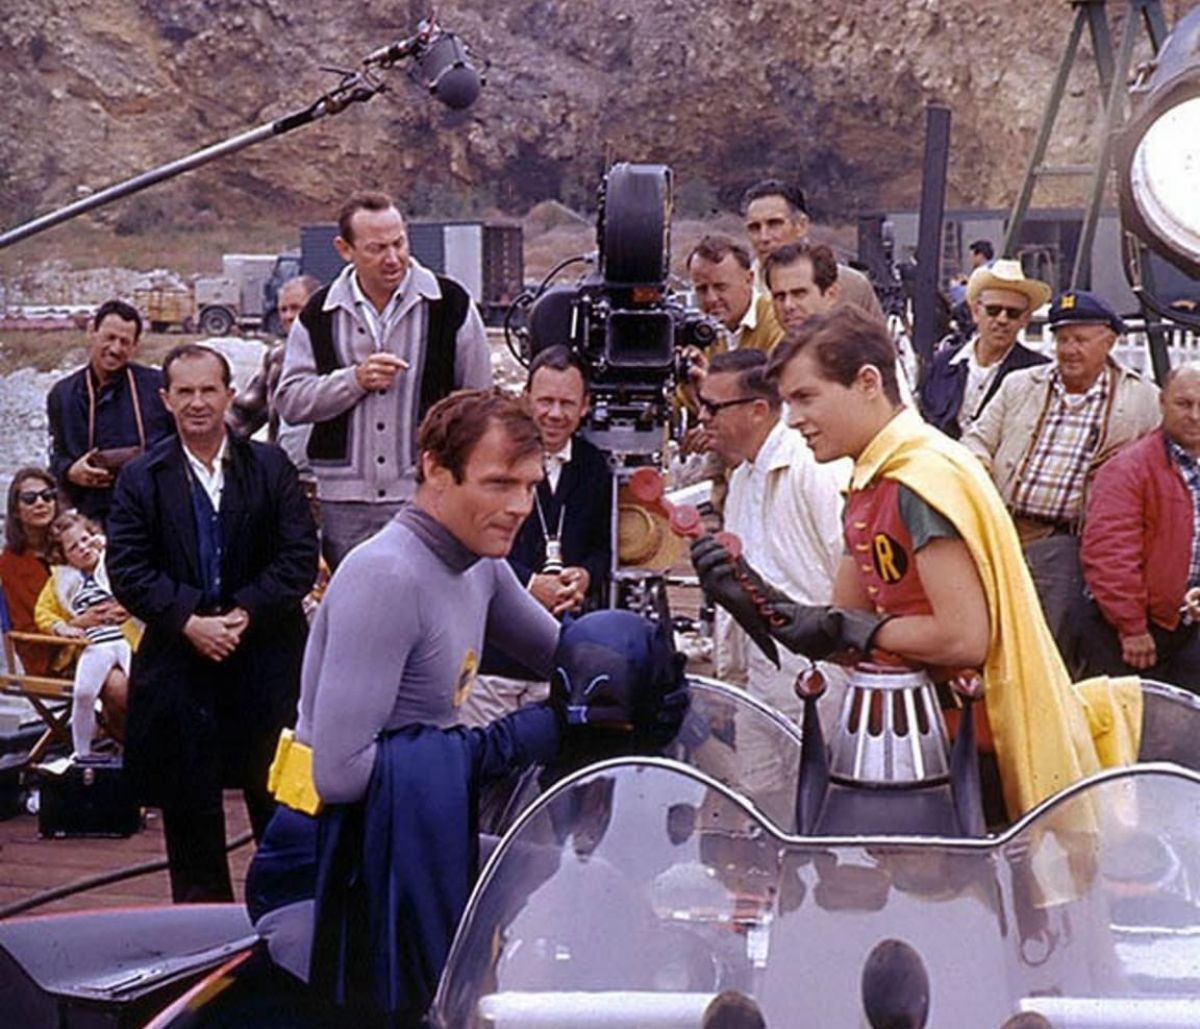 Cast and crew from 20th Century-Fox Studios on location filming a feature-length version of Batman, nation's most popular TV series. Batman (Adam West) and Robin (Burt Ward) are shown in foreground rehearsing a scene with Batmobile and Batphone, while Director Les Martinson (under camera) and Director of Photography Howard Schwartz, ASC (in striped-V sweater), check the action.